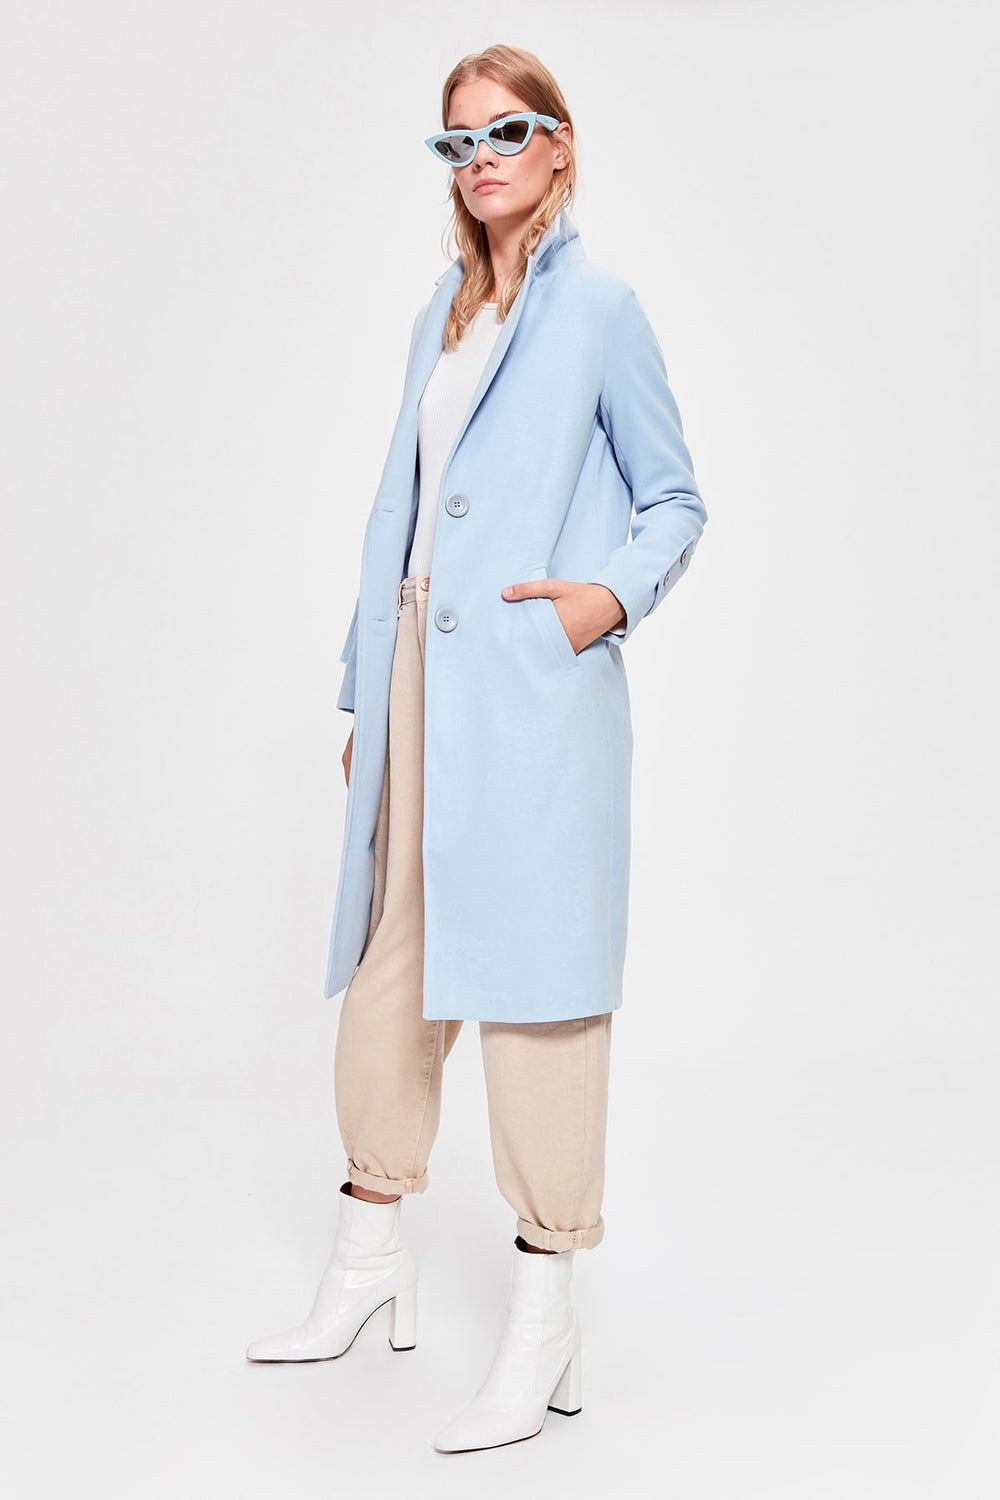 Blue Front Button Long Stamp Coat - Top Maxy